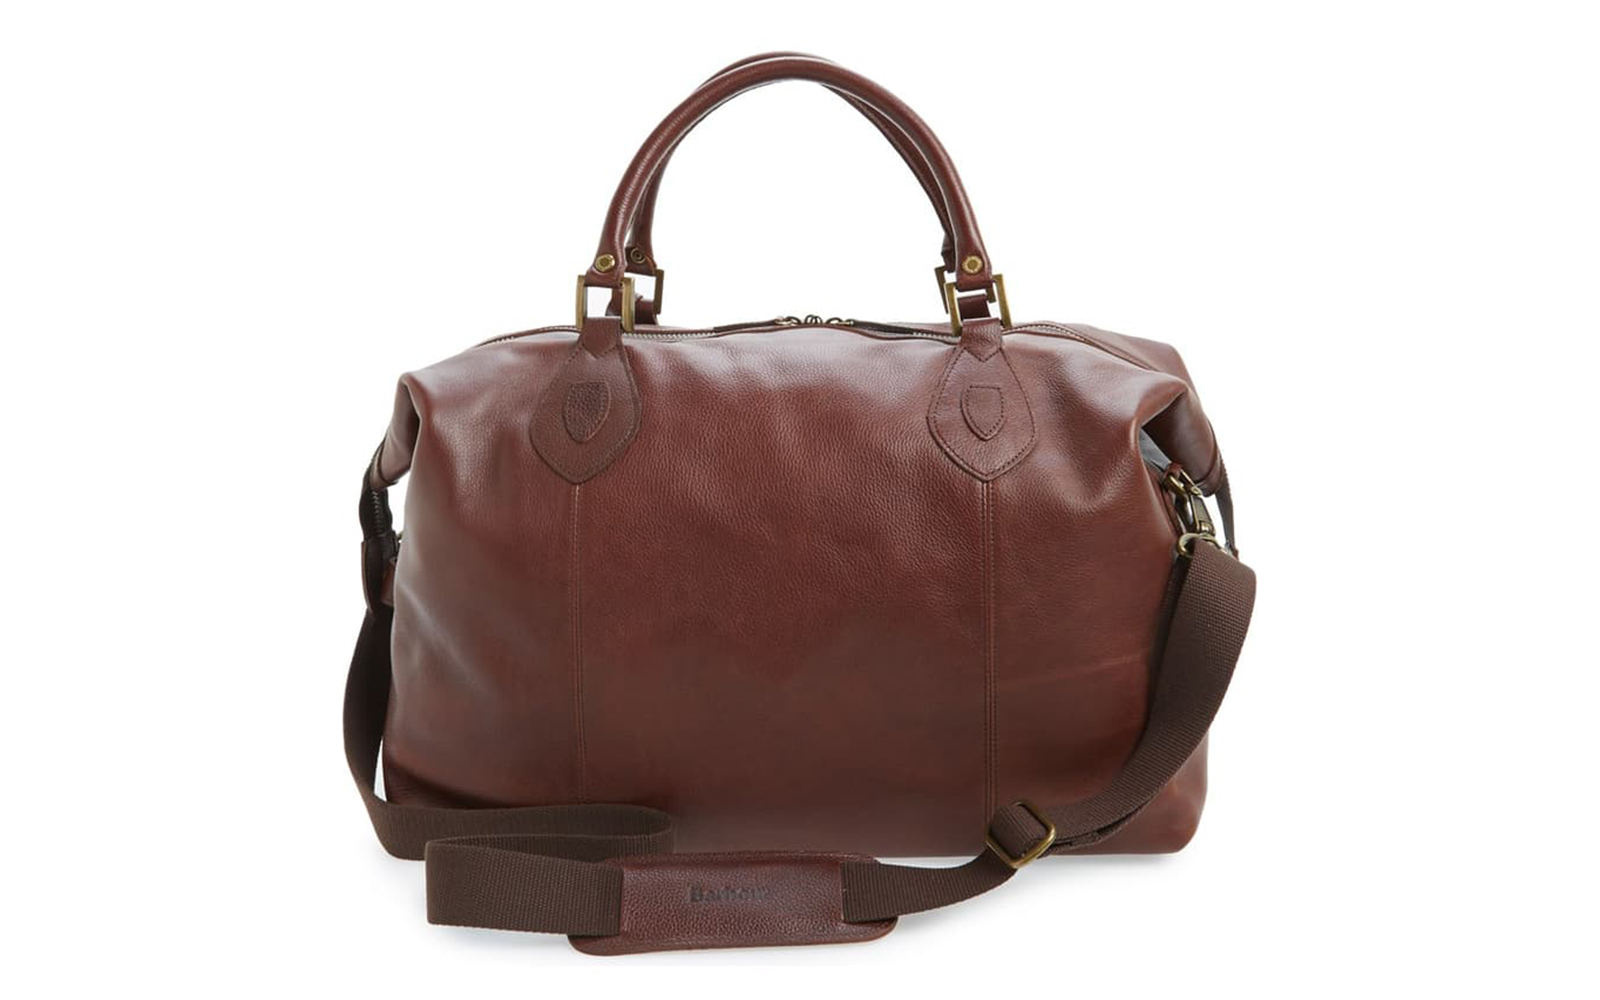 Barbour Leather Travel Bag